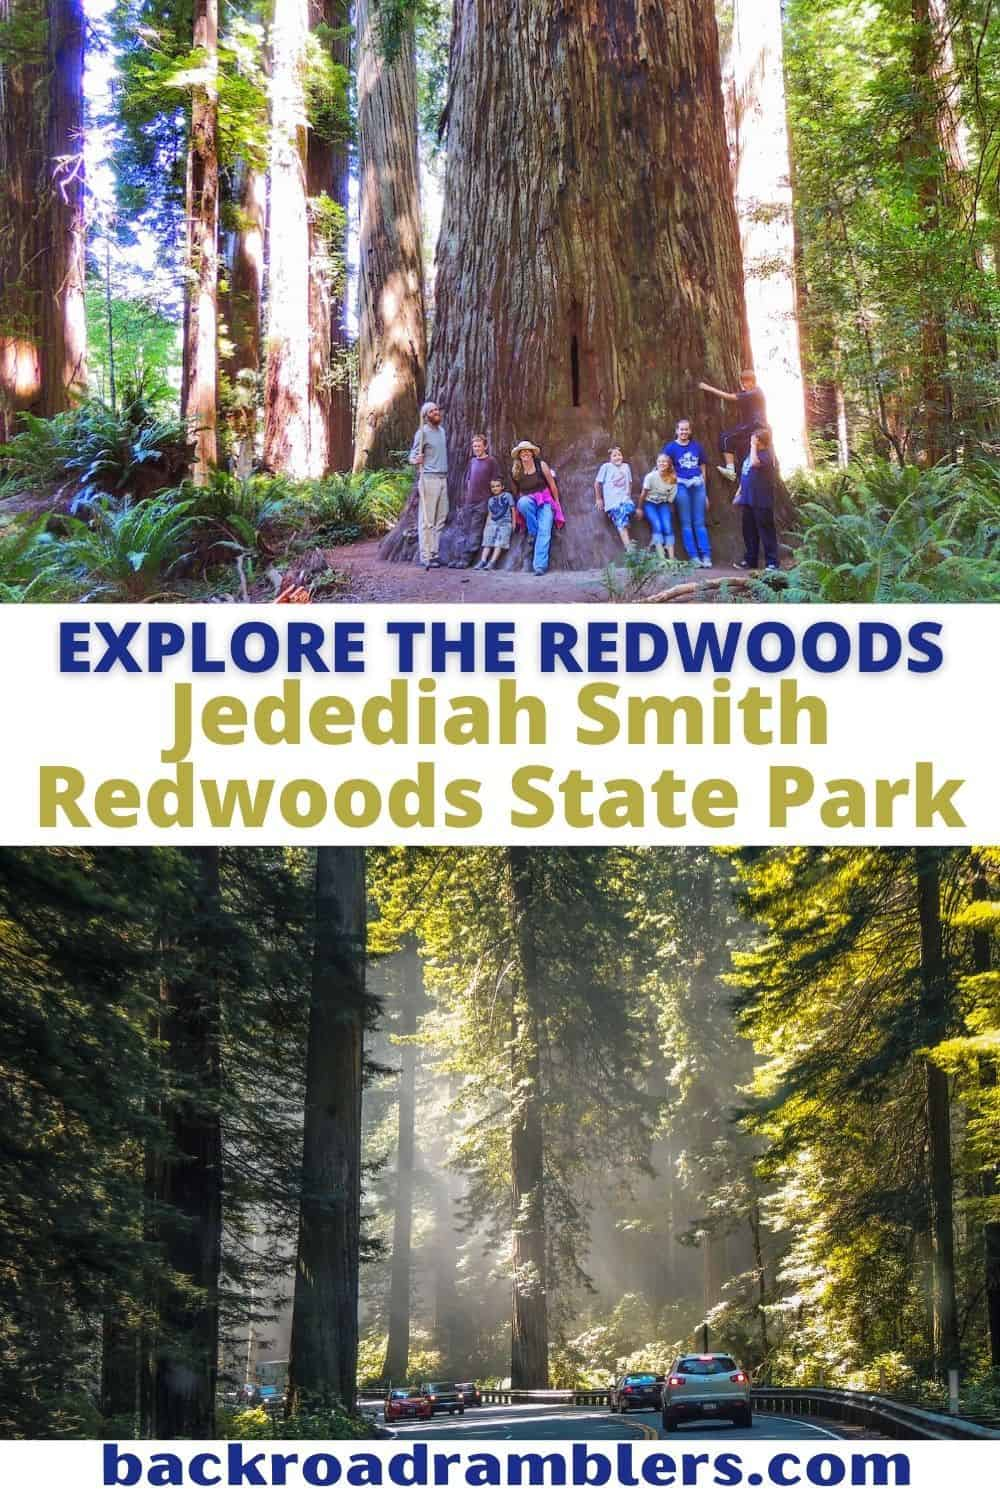 Two photos featuring tall redwood trees. Text overlay: Explore the Redwoods - Jedediah Smith Redwoods State Park